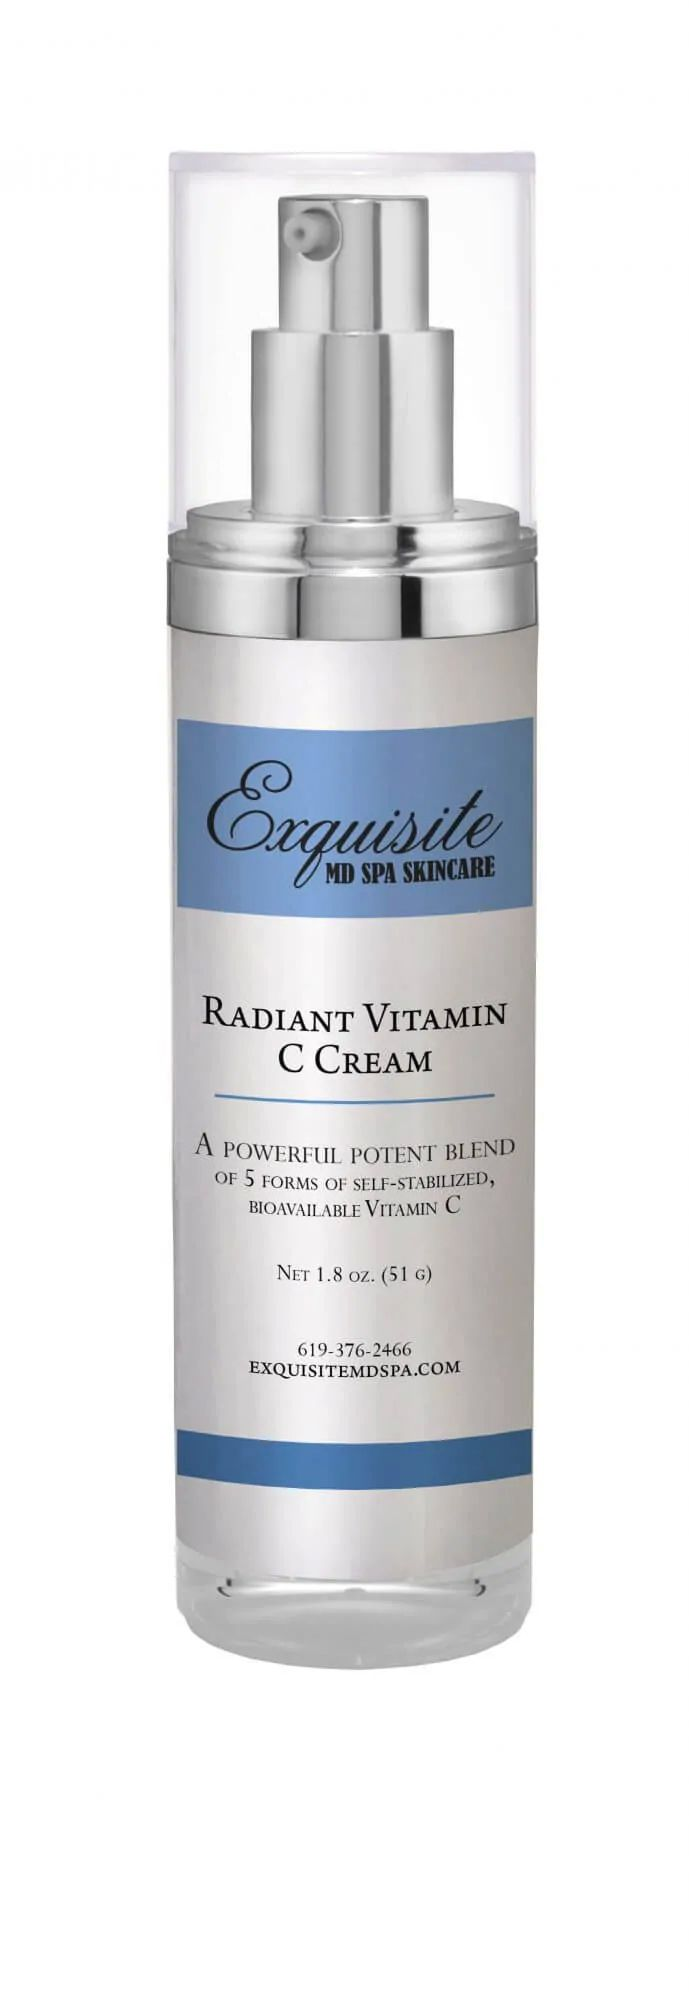 Radiant Vitamin C Cream